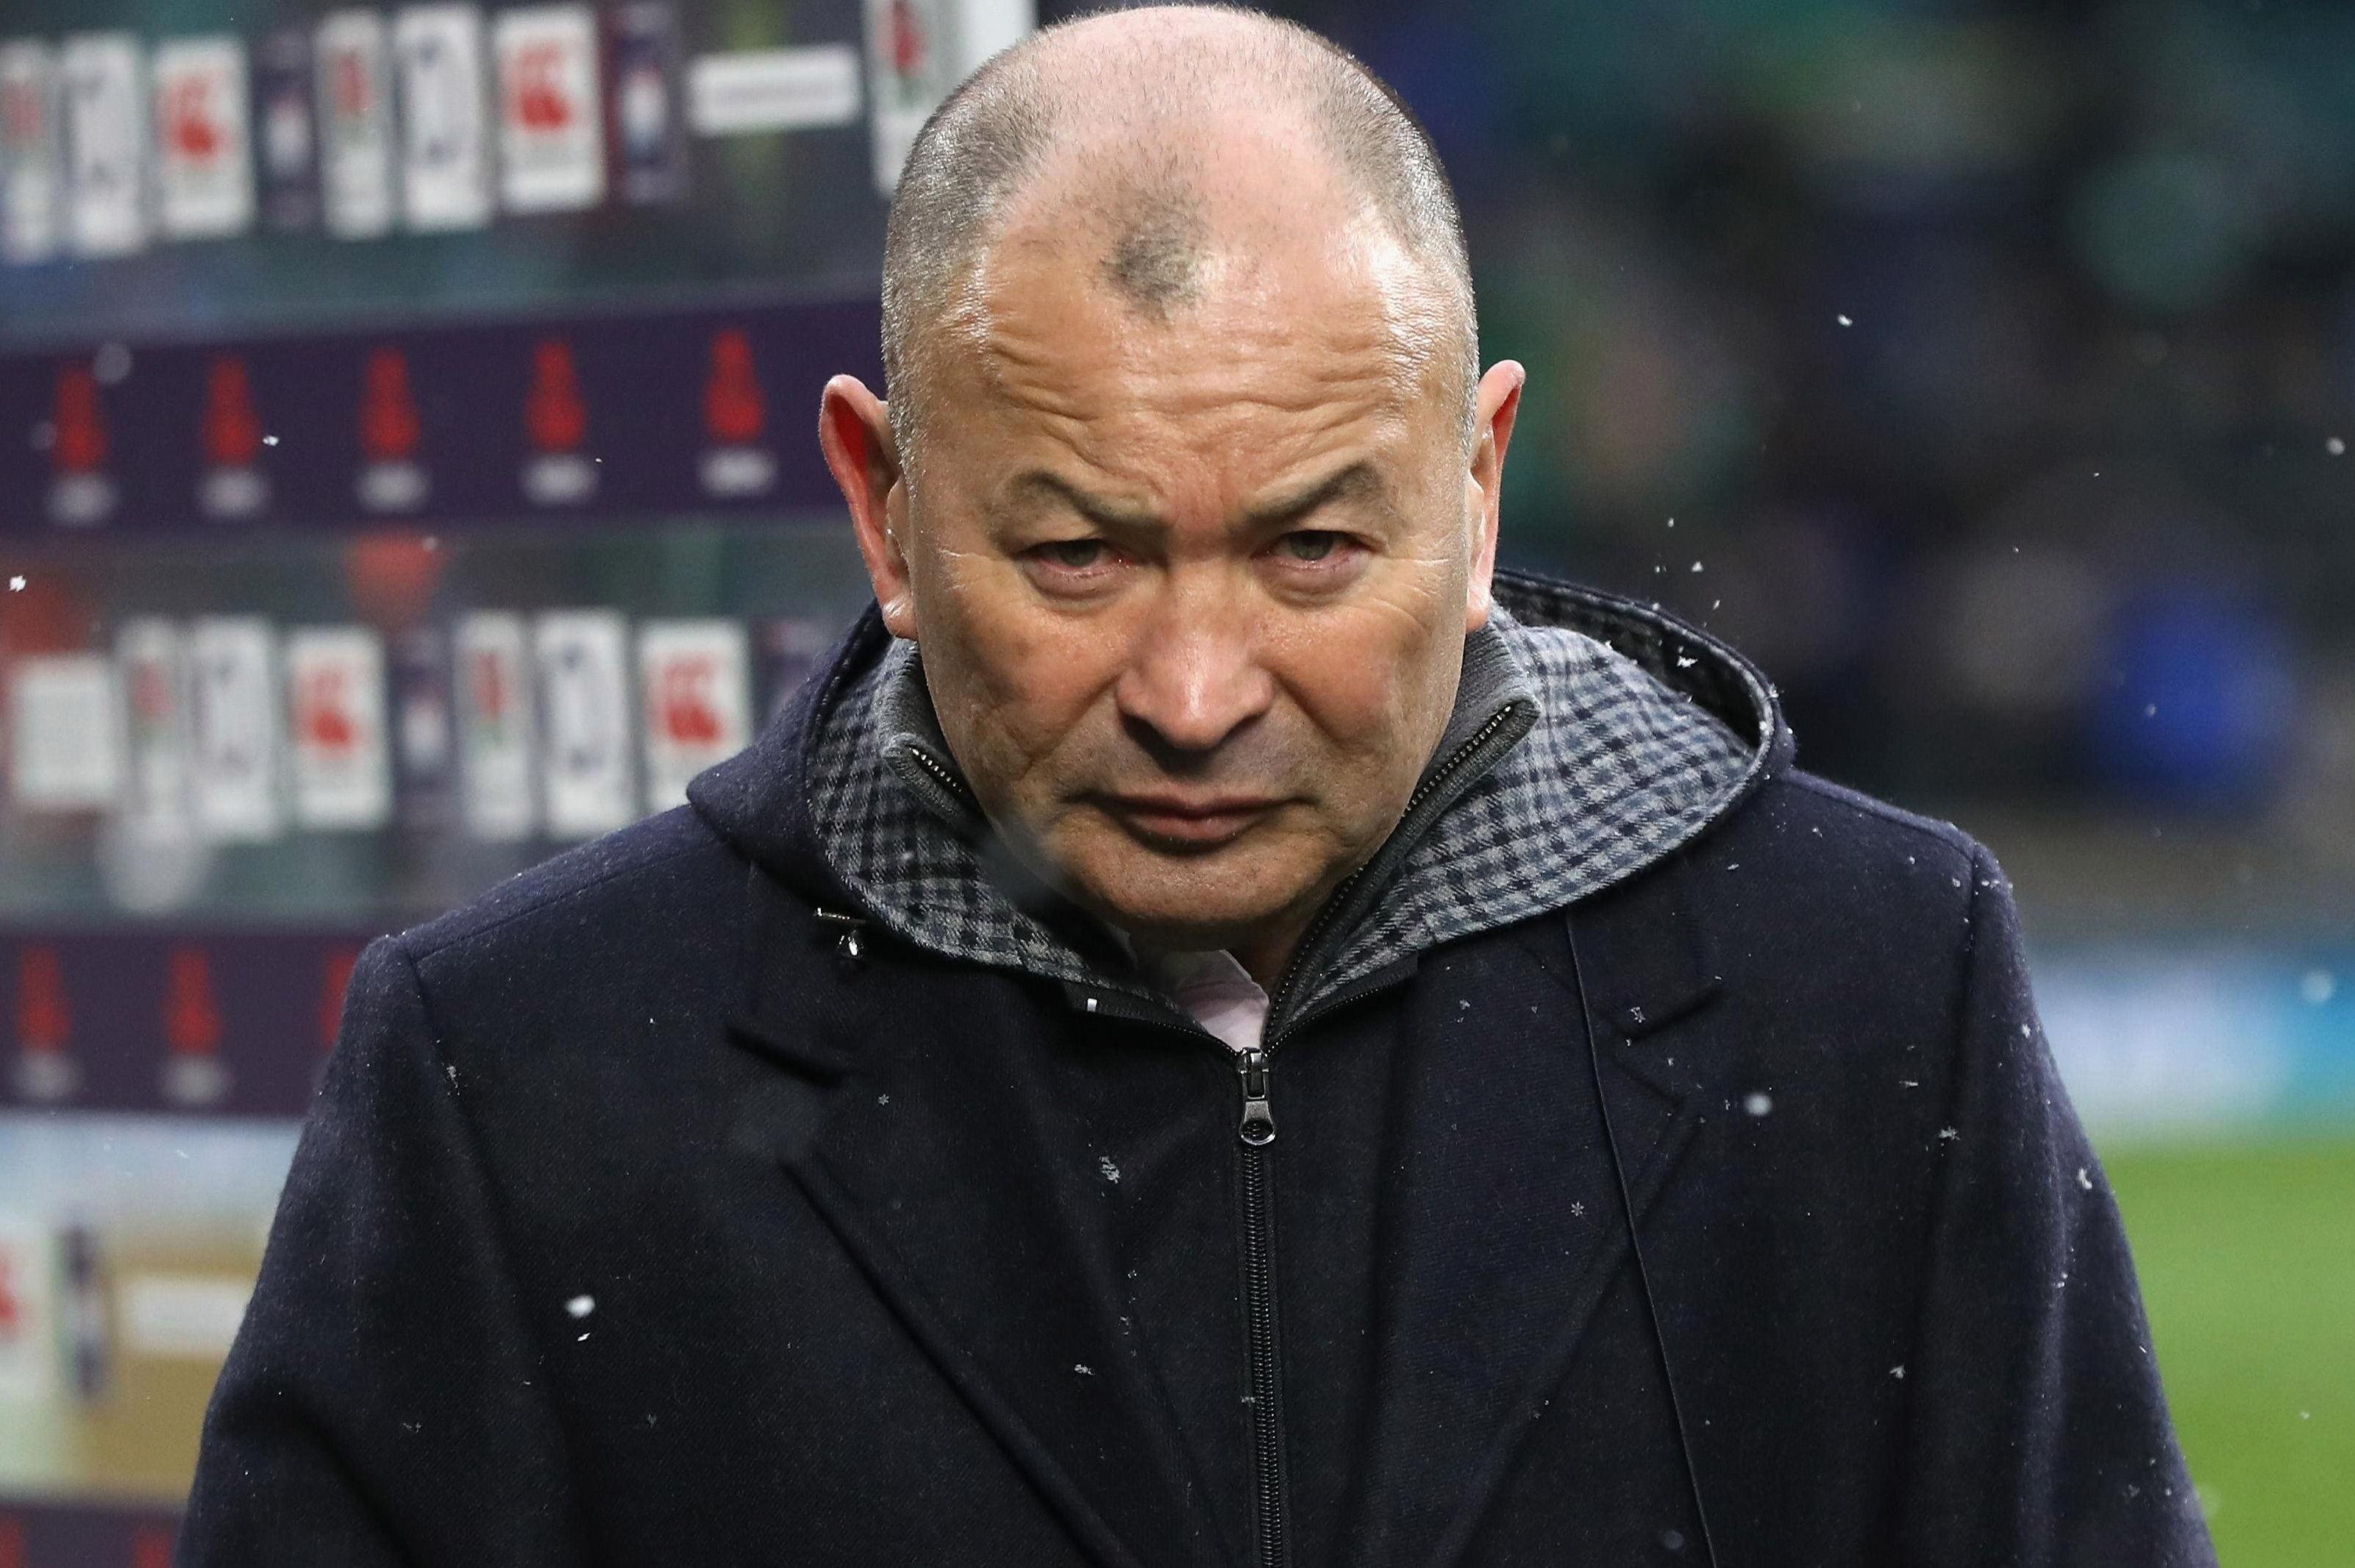 Eddie Jones is ready to make changes after a dismal Six Nations campaign - but says everything England do is geared towards the World Cup next year